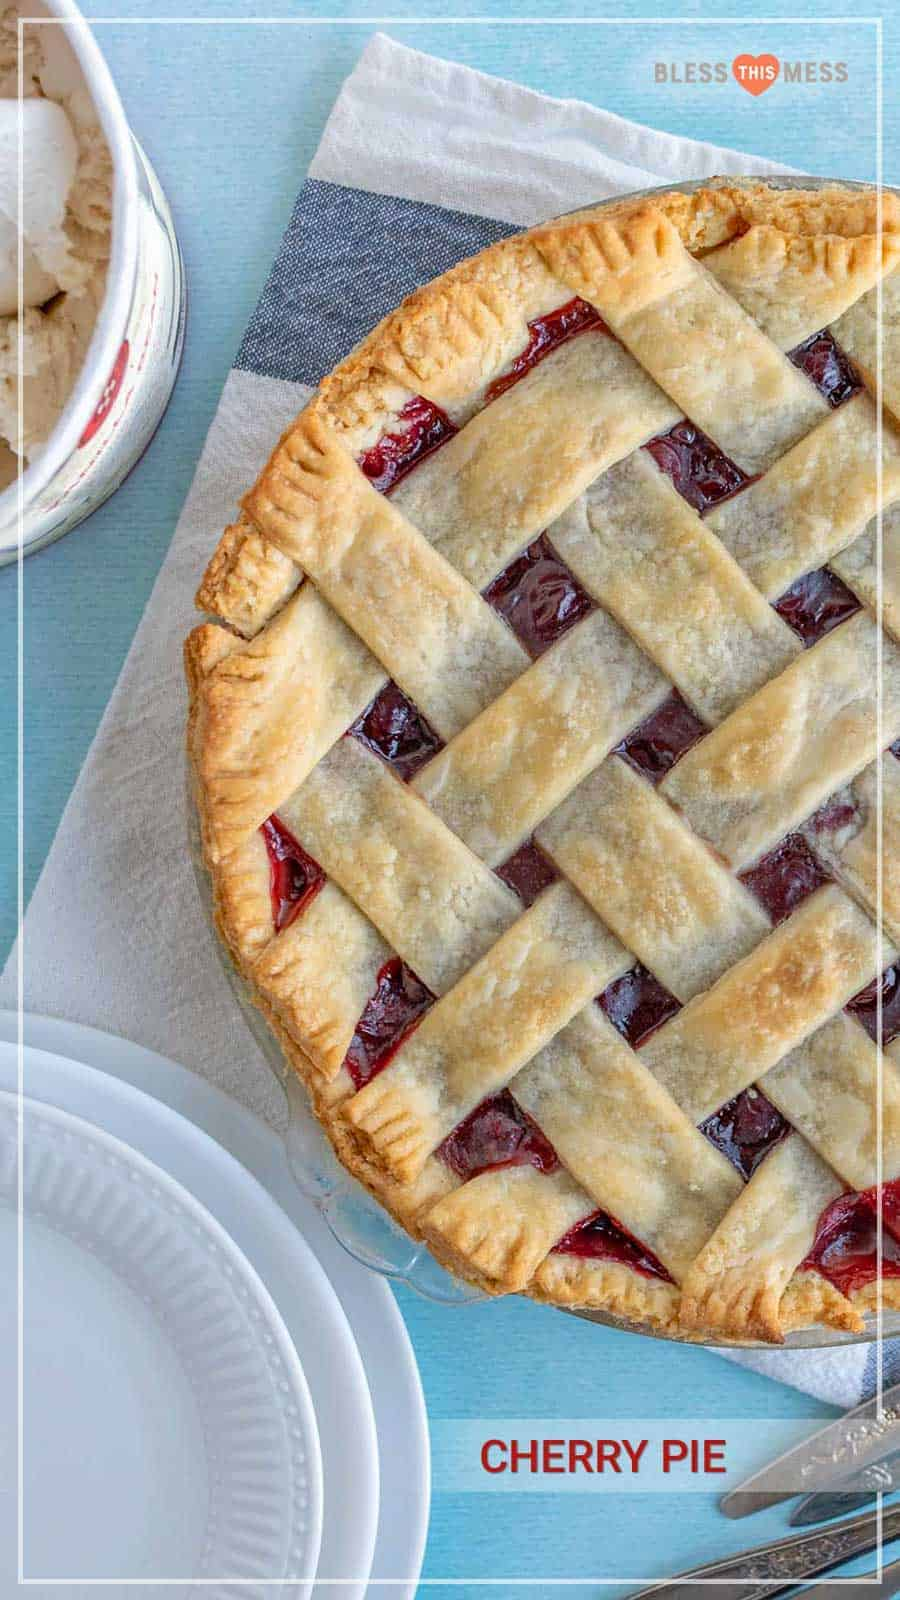 Homemade cherry pie is a subtly sweet and luxurious pie with a flaky crust that is delicious, so simple, and perfect for holidays and other celebrations! I love it as another holiday gathering dessert for those who are fans of fruity sweets -- this one takes the cake. I mean, pie! #cherrypie #cherrypierecipe #pie #baking #cherry #cherrydesserts #pierecipe #easypie